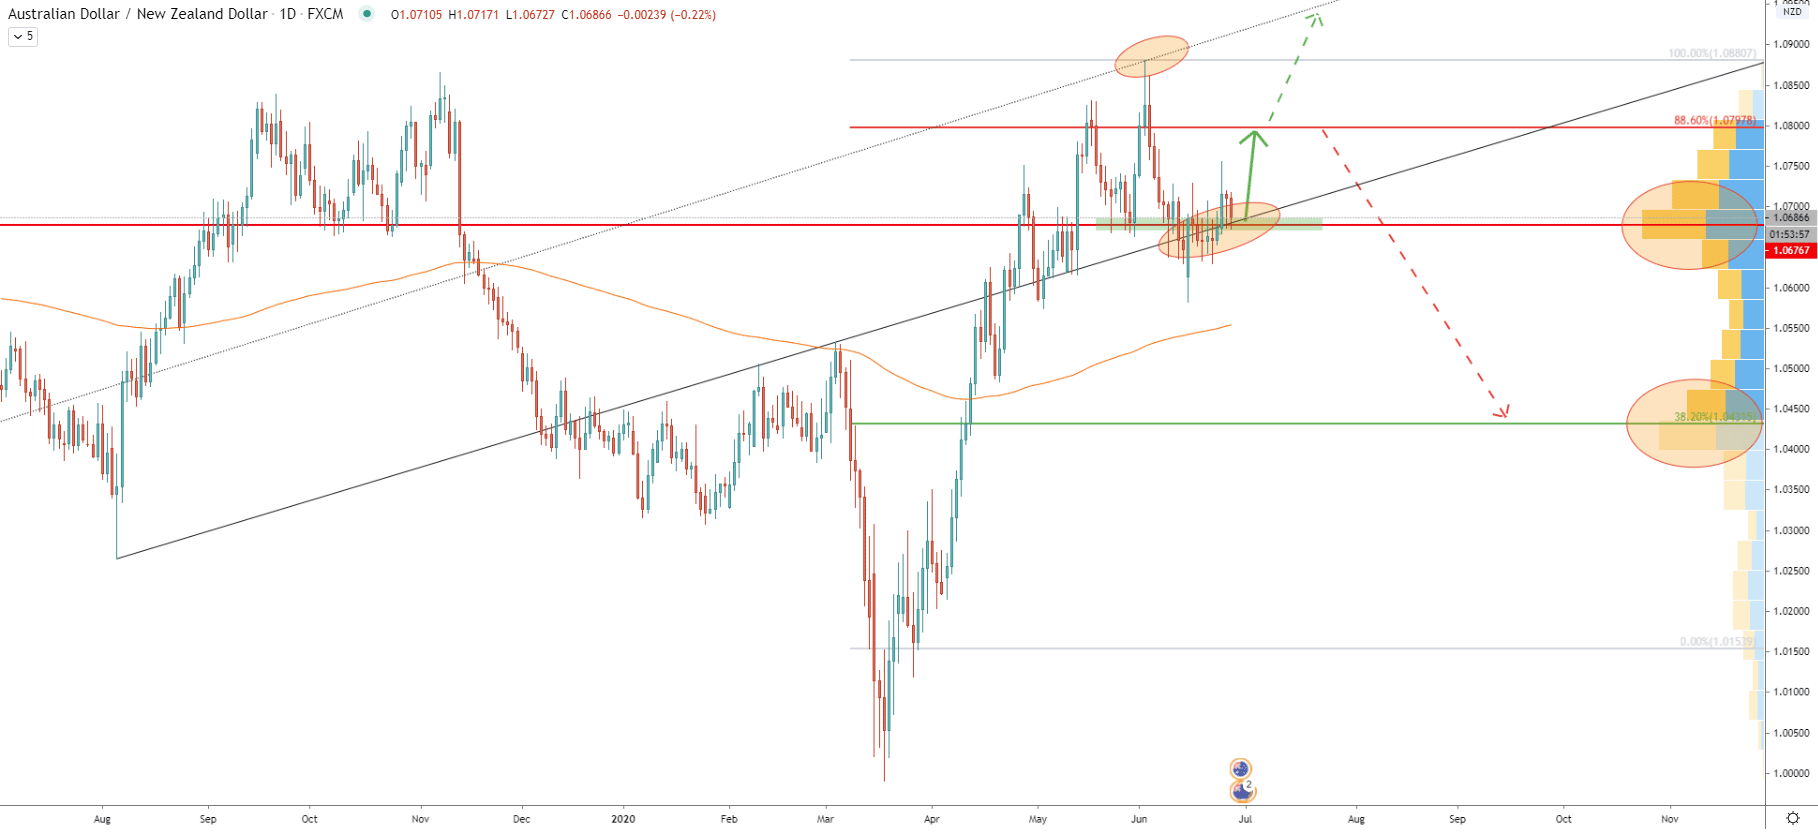 AUD/NZD Daily Technical Analysis 26 June 2020